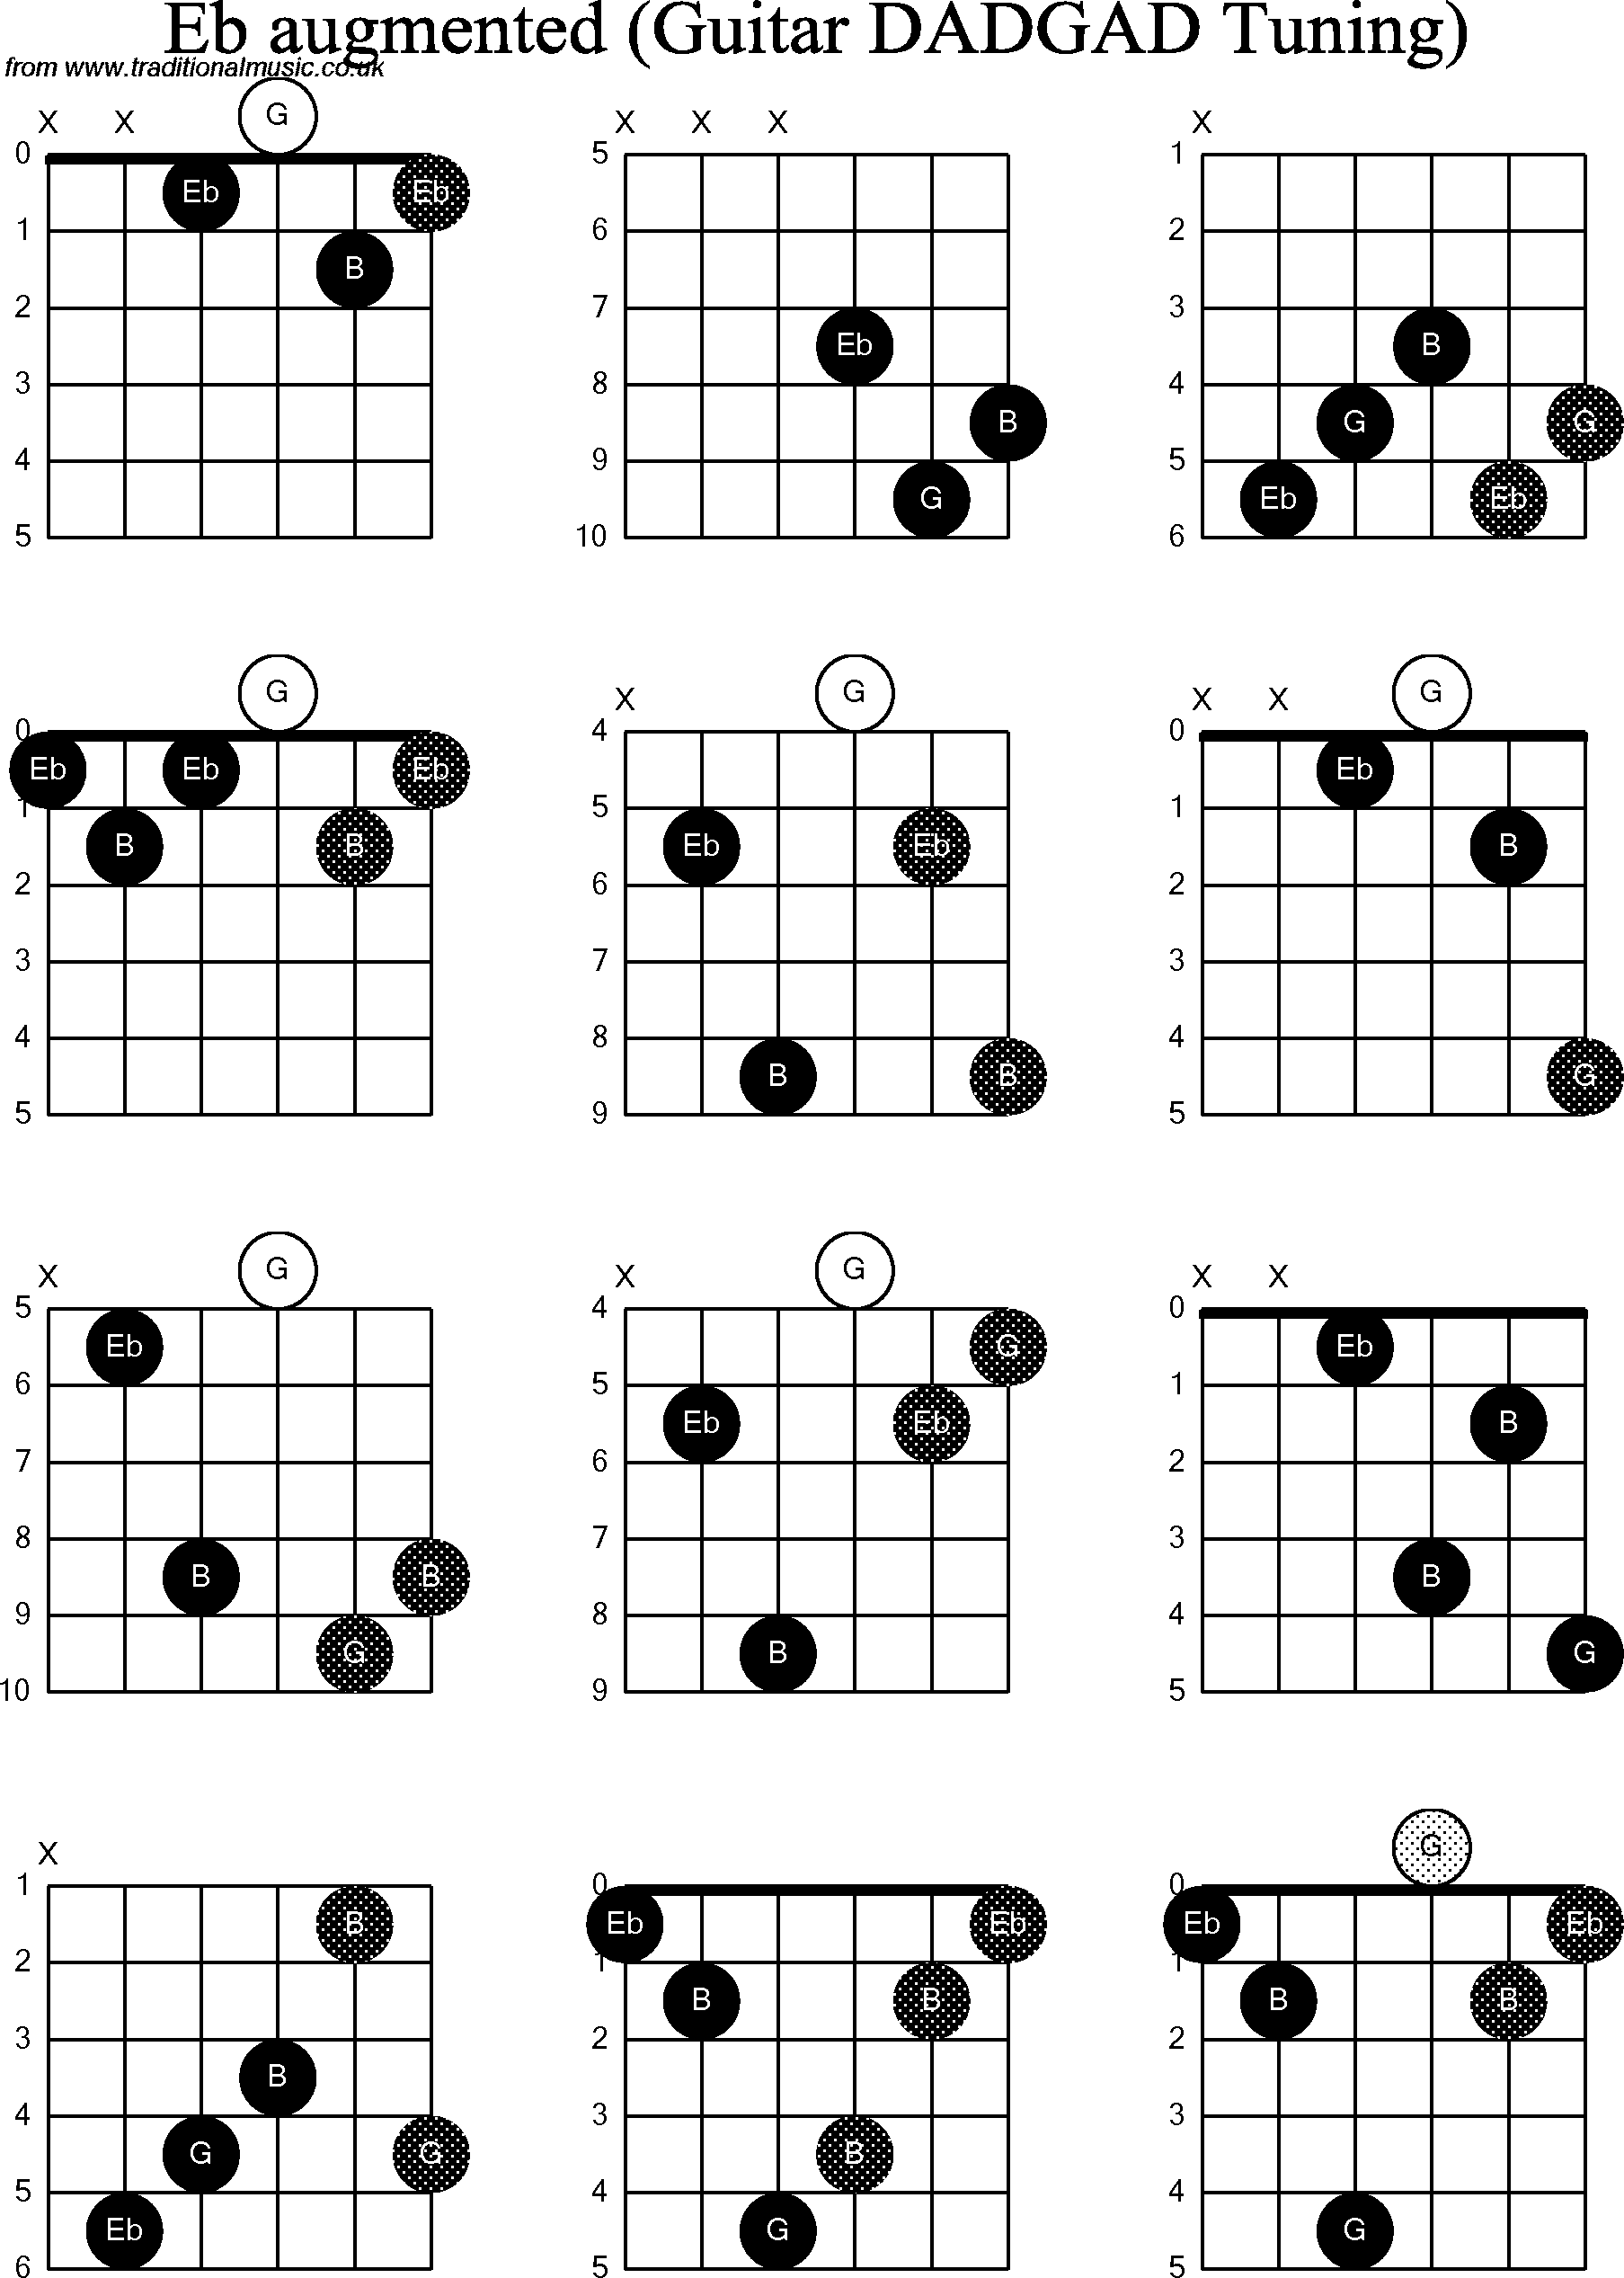 Chord diagrams D Modal Guitar( DADGAD): Eb Augmented